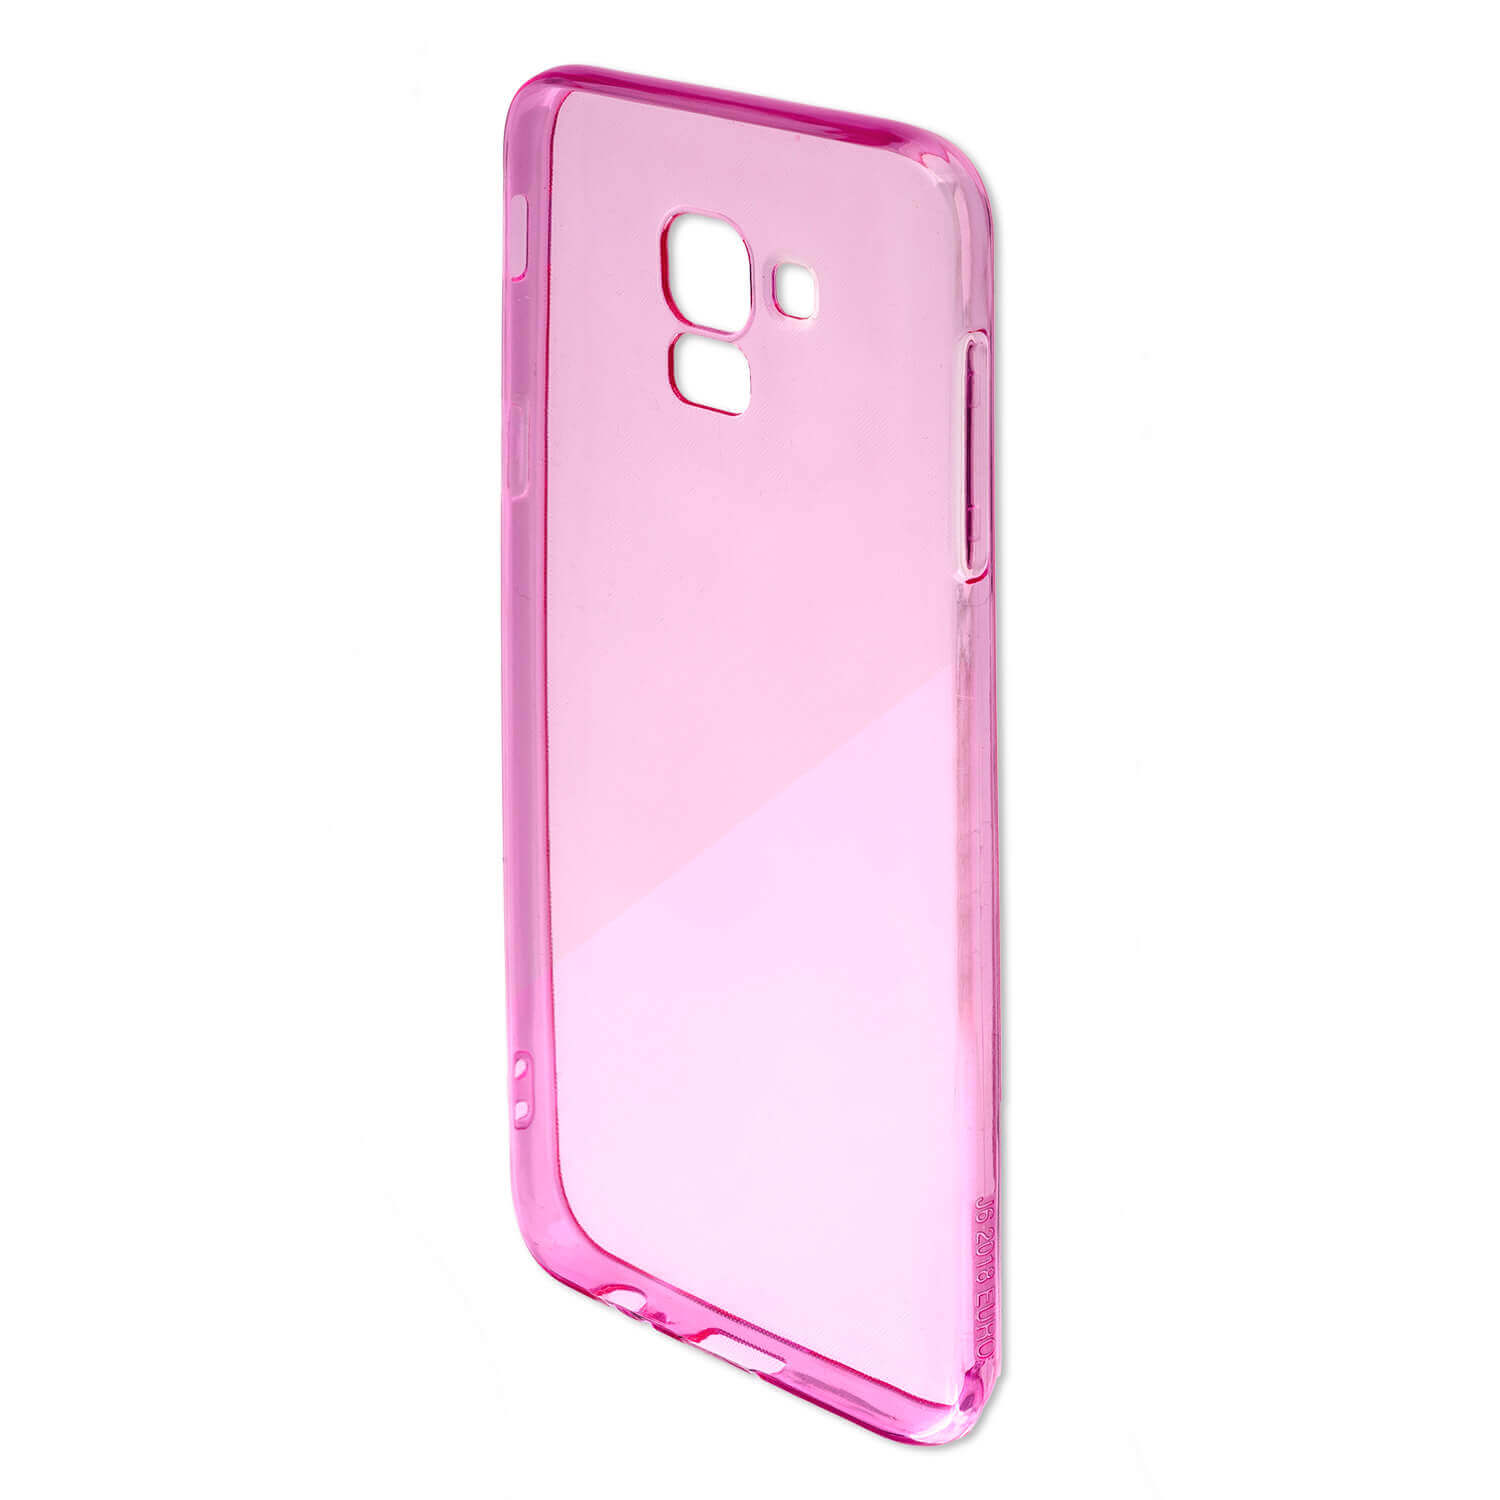 4smarts Soft Cover Invisible Slim — тънък силиконов кейс за Samsung Galaxy A50 (лилав) (bulk) - 1